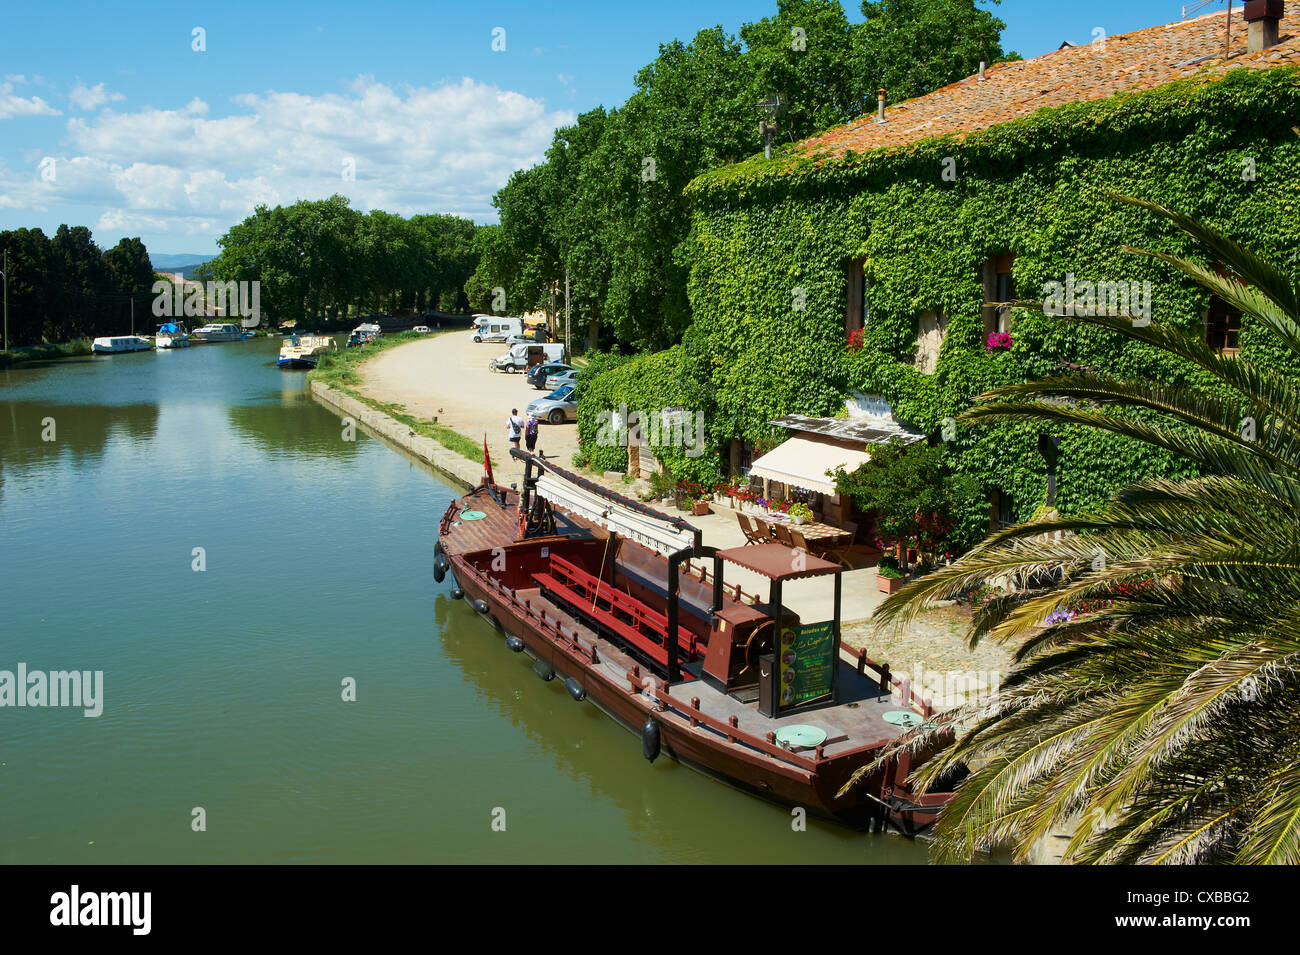 Barge for tourists, Le Somail, Aude, Languedoc Roussillon - Stock Image